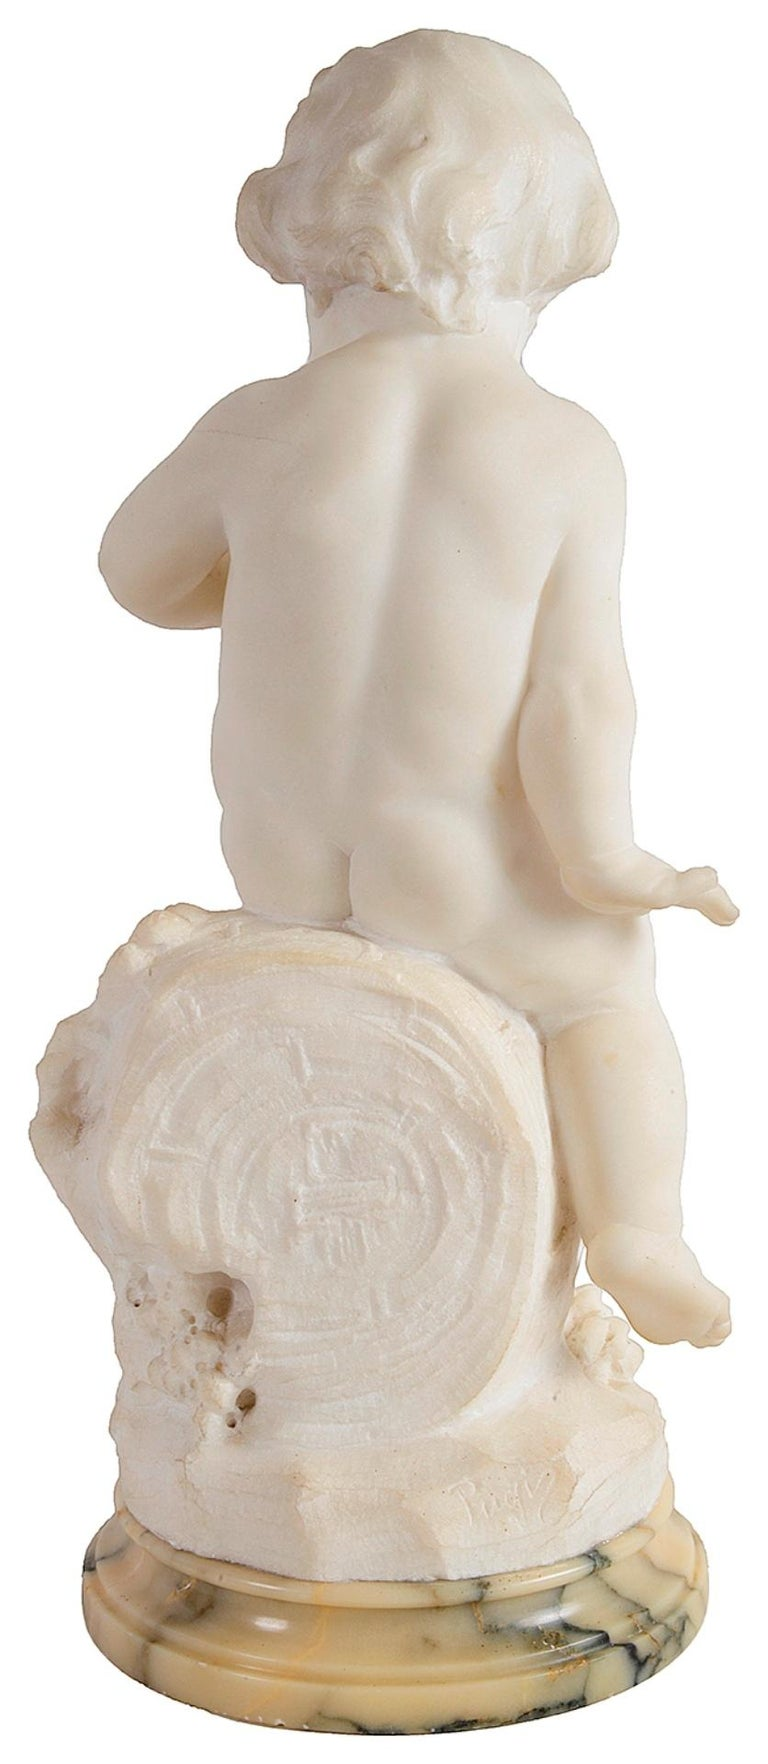 Italian 19th Century Marble Statue of a Young Bacchus Boy For Sale